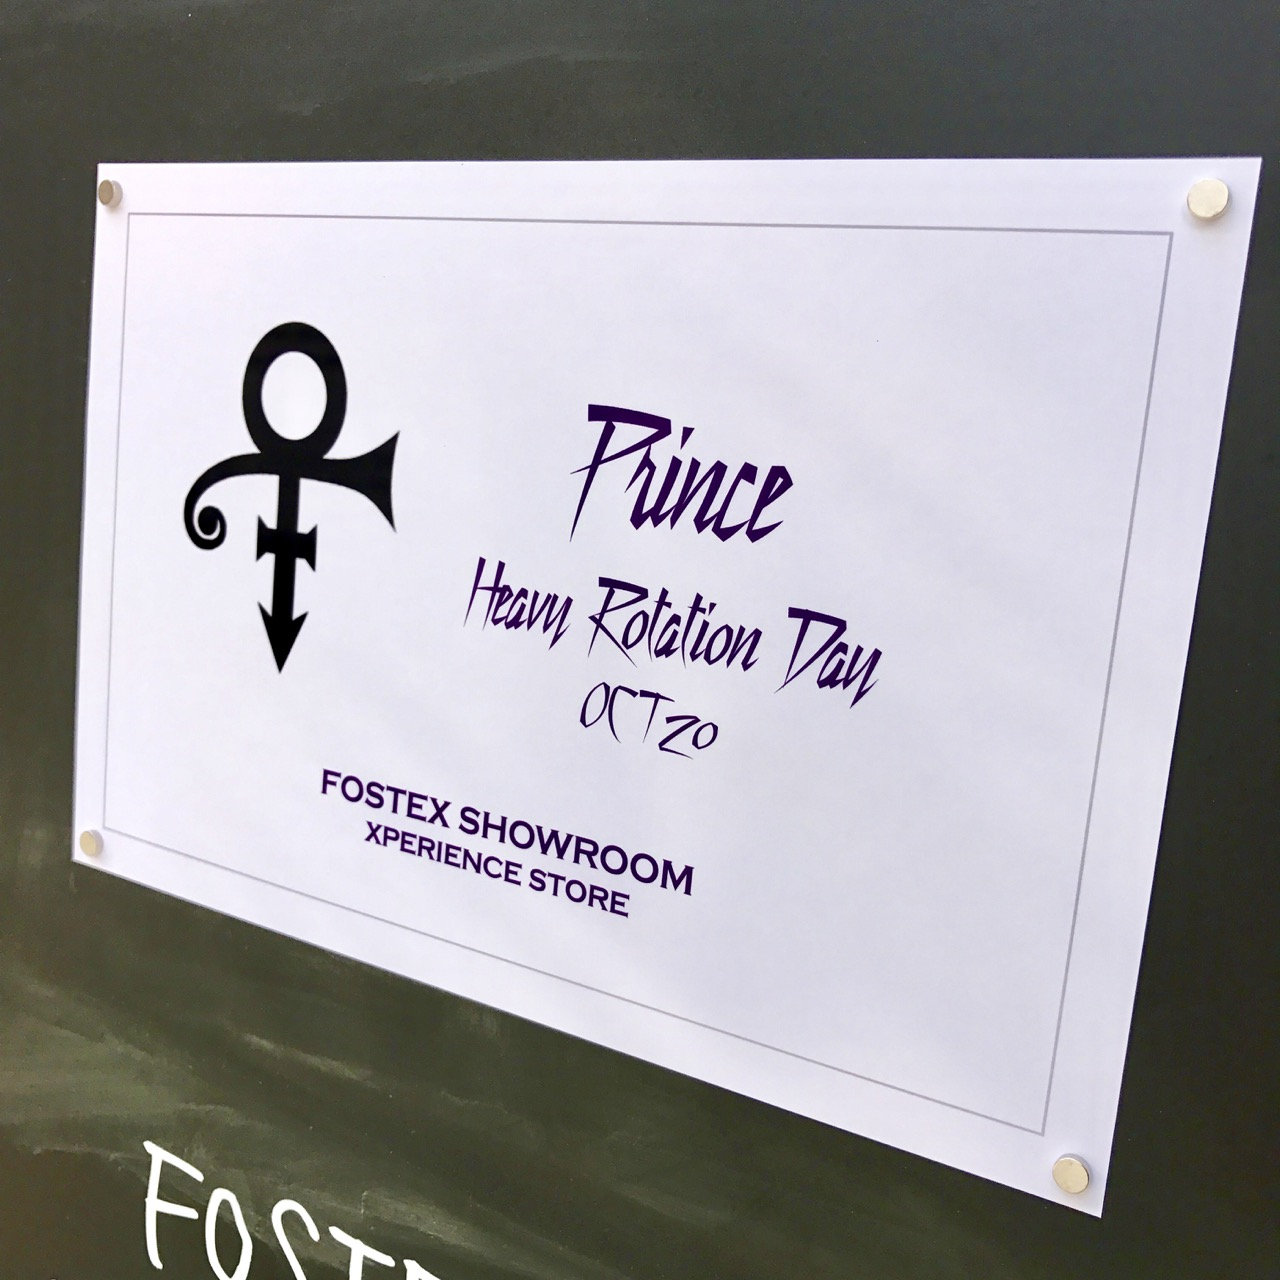 Prince Heavy Rotation Day